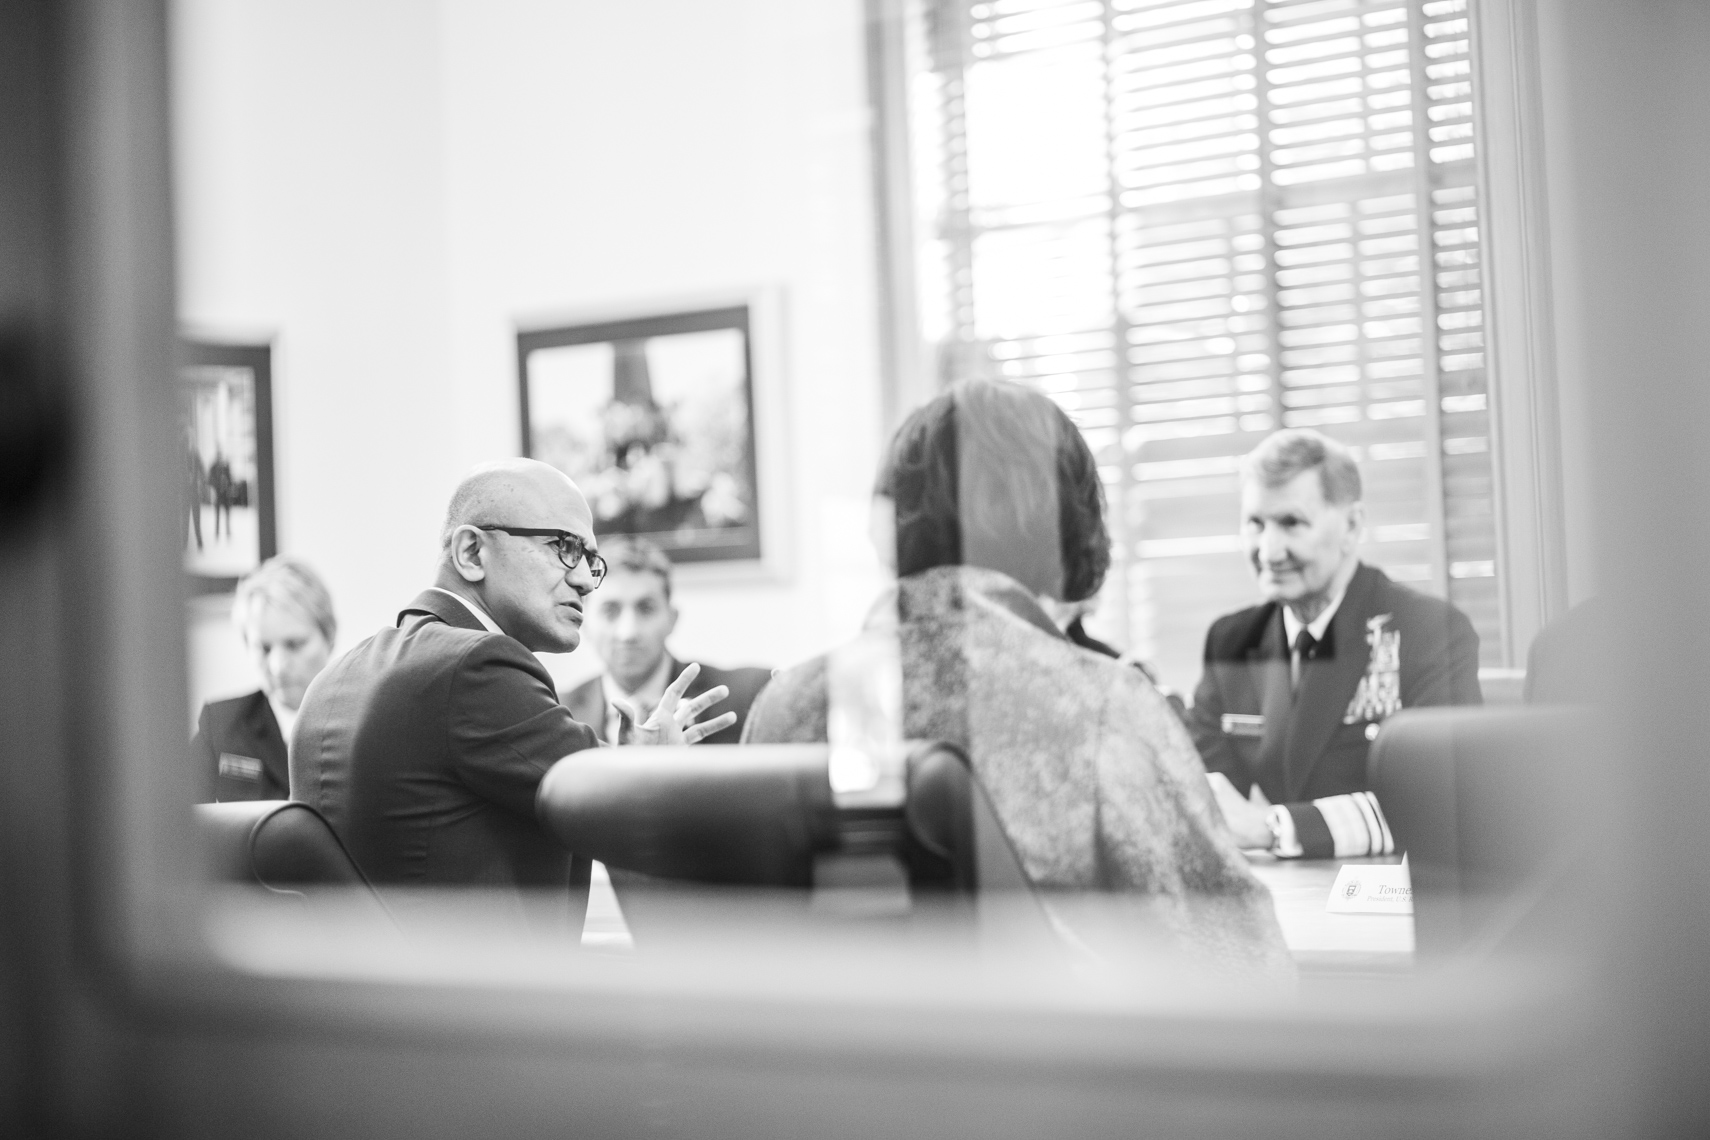 Microsoft CEO Satya Nadella in a meeting in Annapolis Maryland.